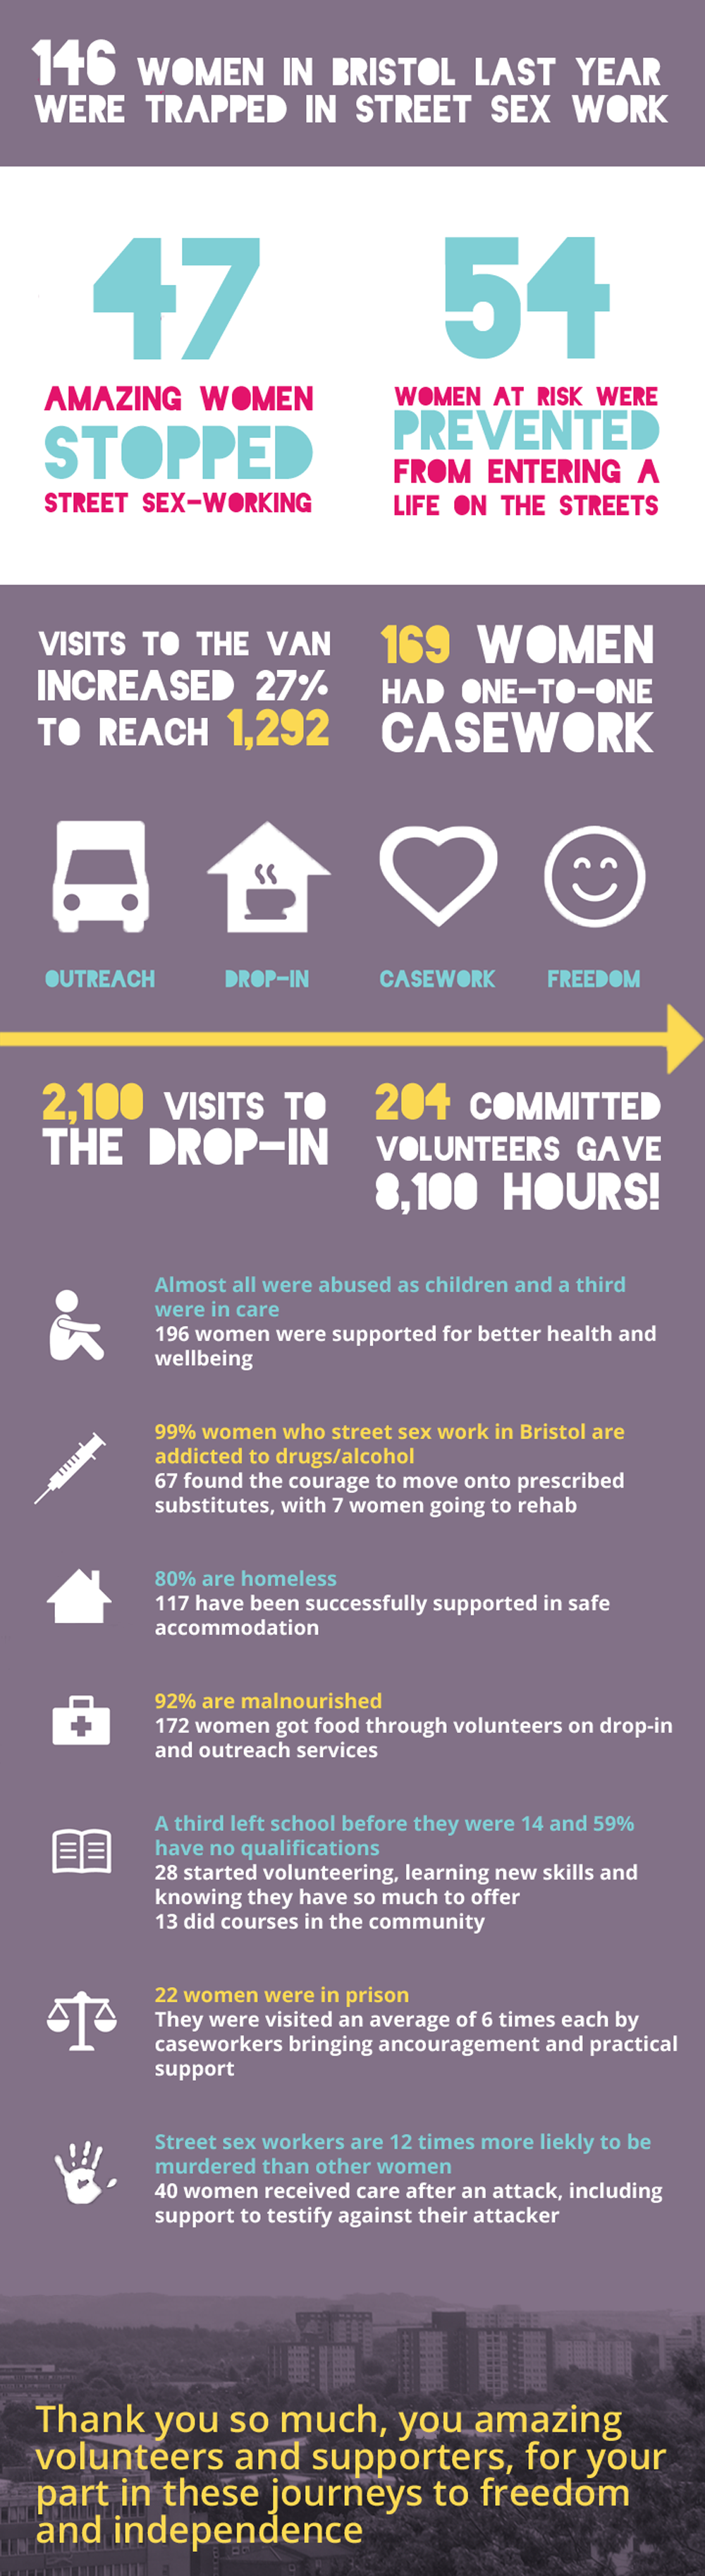 146 women in Bristol last year were trapped in street sex work. 47 amazing women stopped street sex-working. 54 women at risk were prevented from entering a life on the streets. Visits to the van increased 27% to reach 1,292. 169 women had one-to-one casework. There were 2,100 visits to the drop-in. 204 committed volunteers gave 8,100 hours.